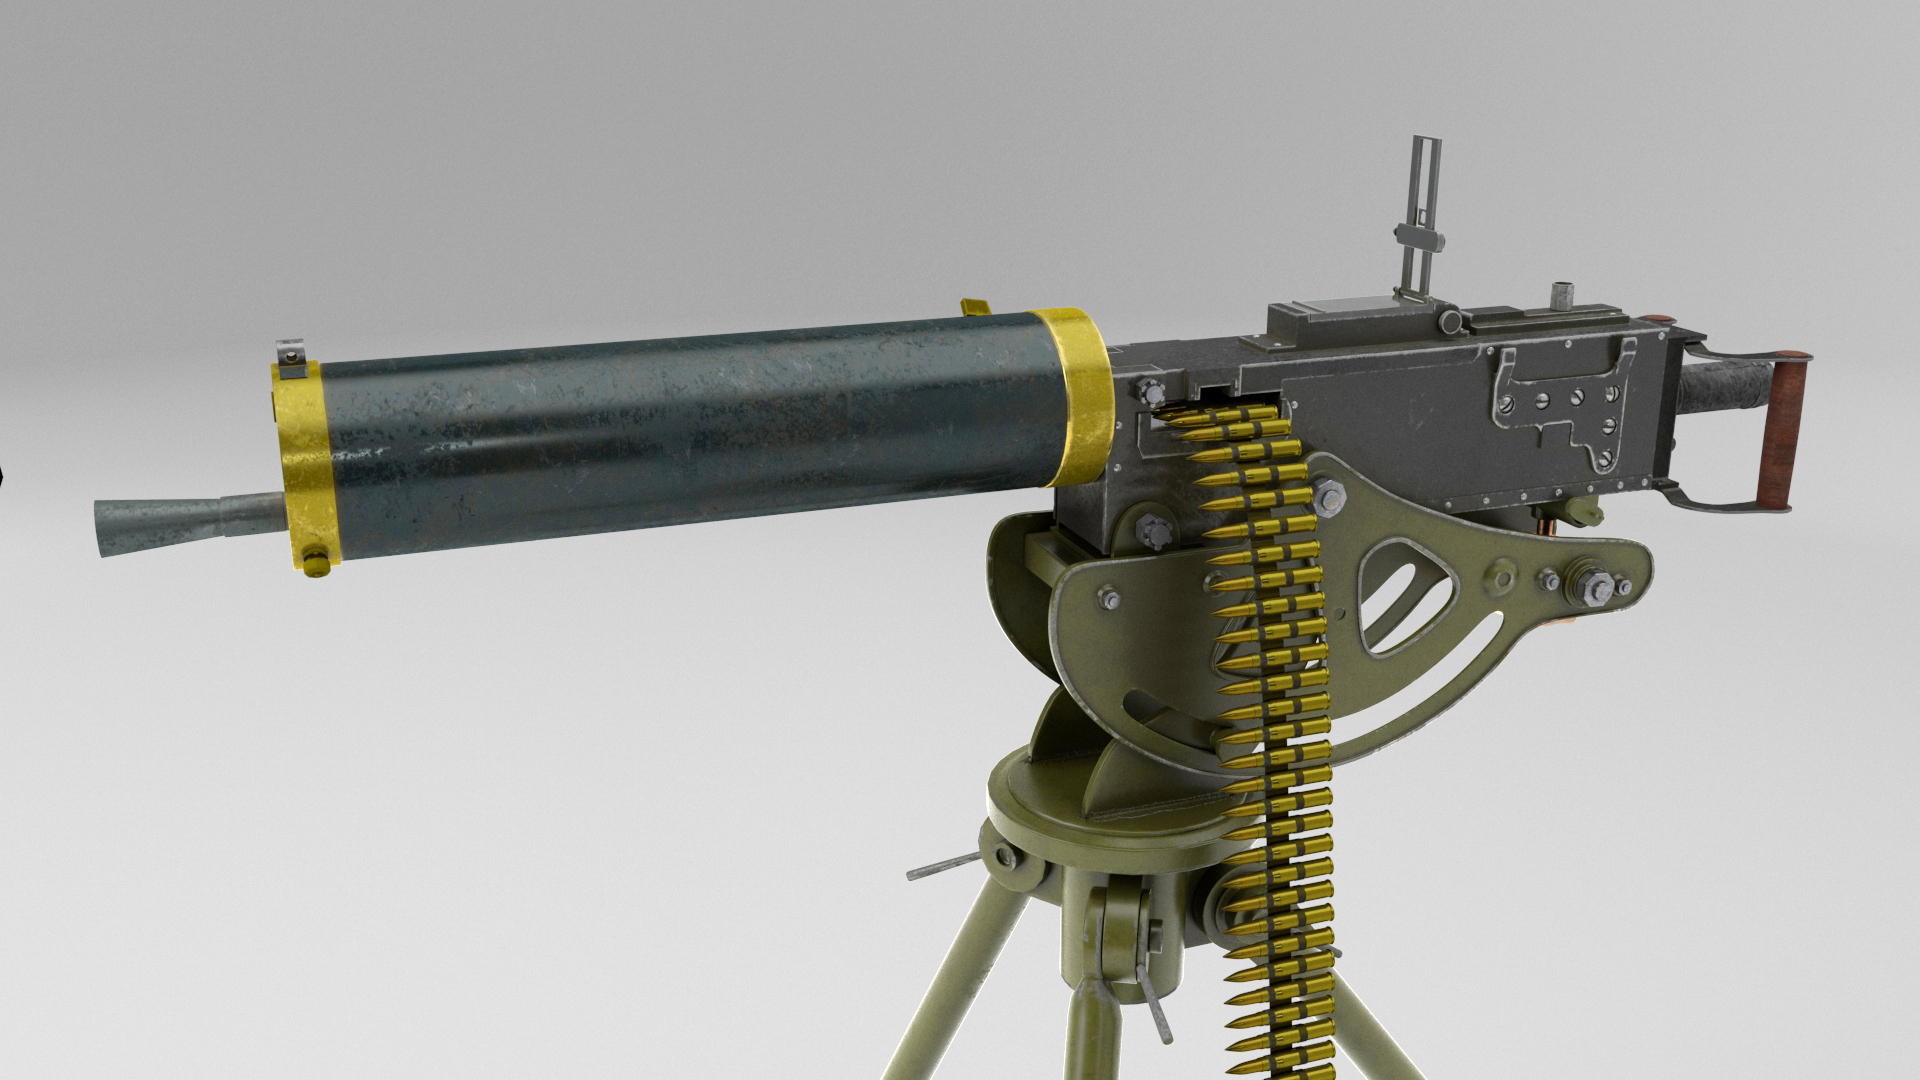 Browning 1917 in Maya vray 5.0 image